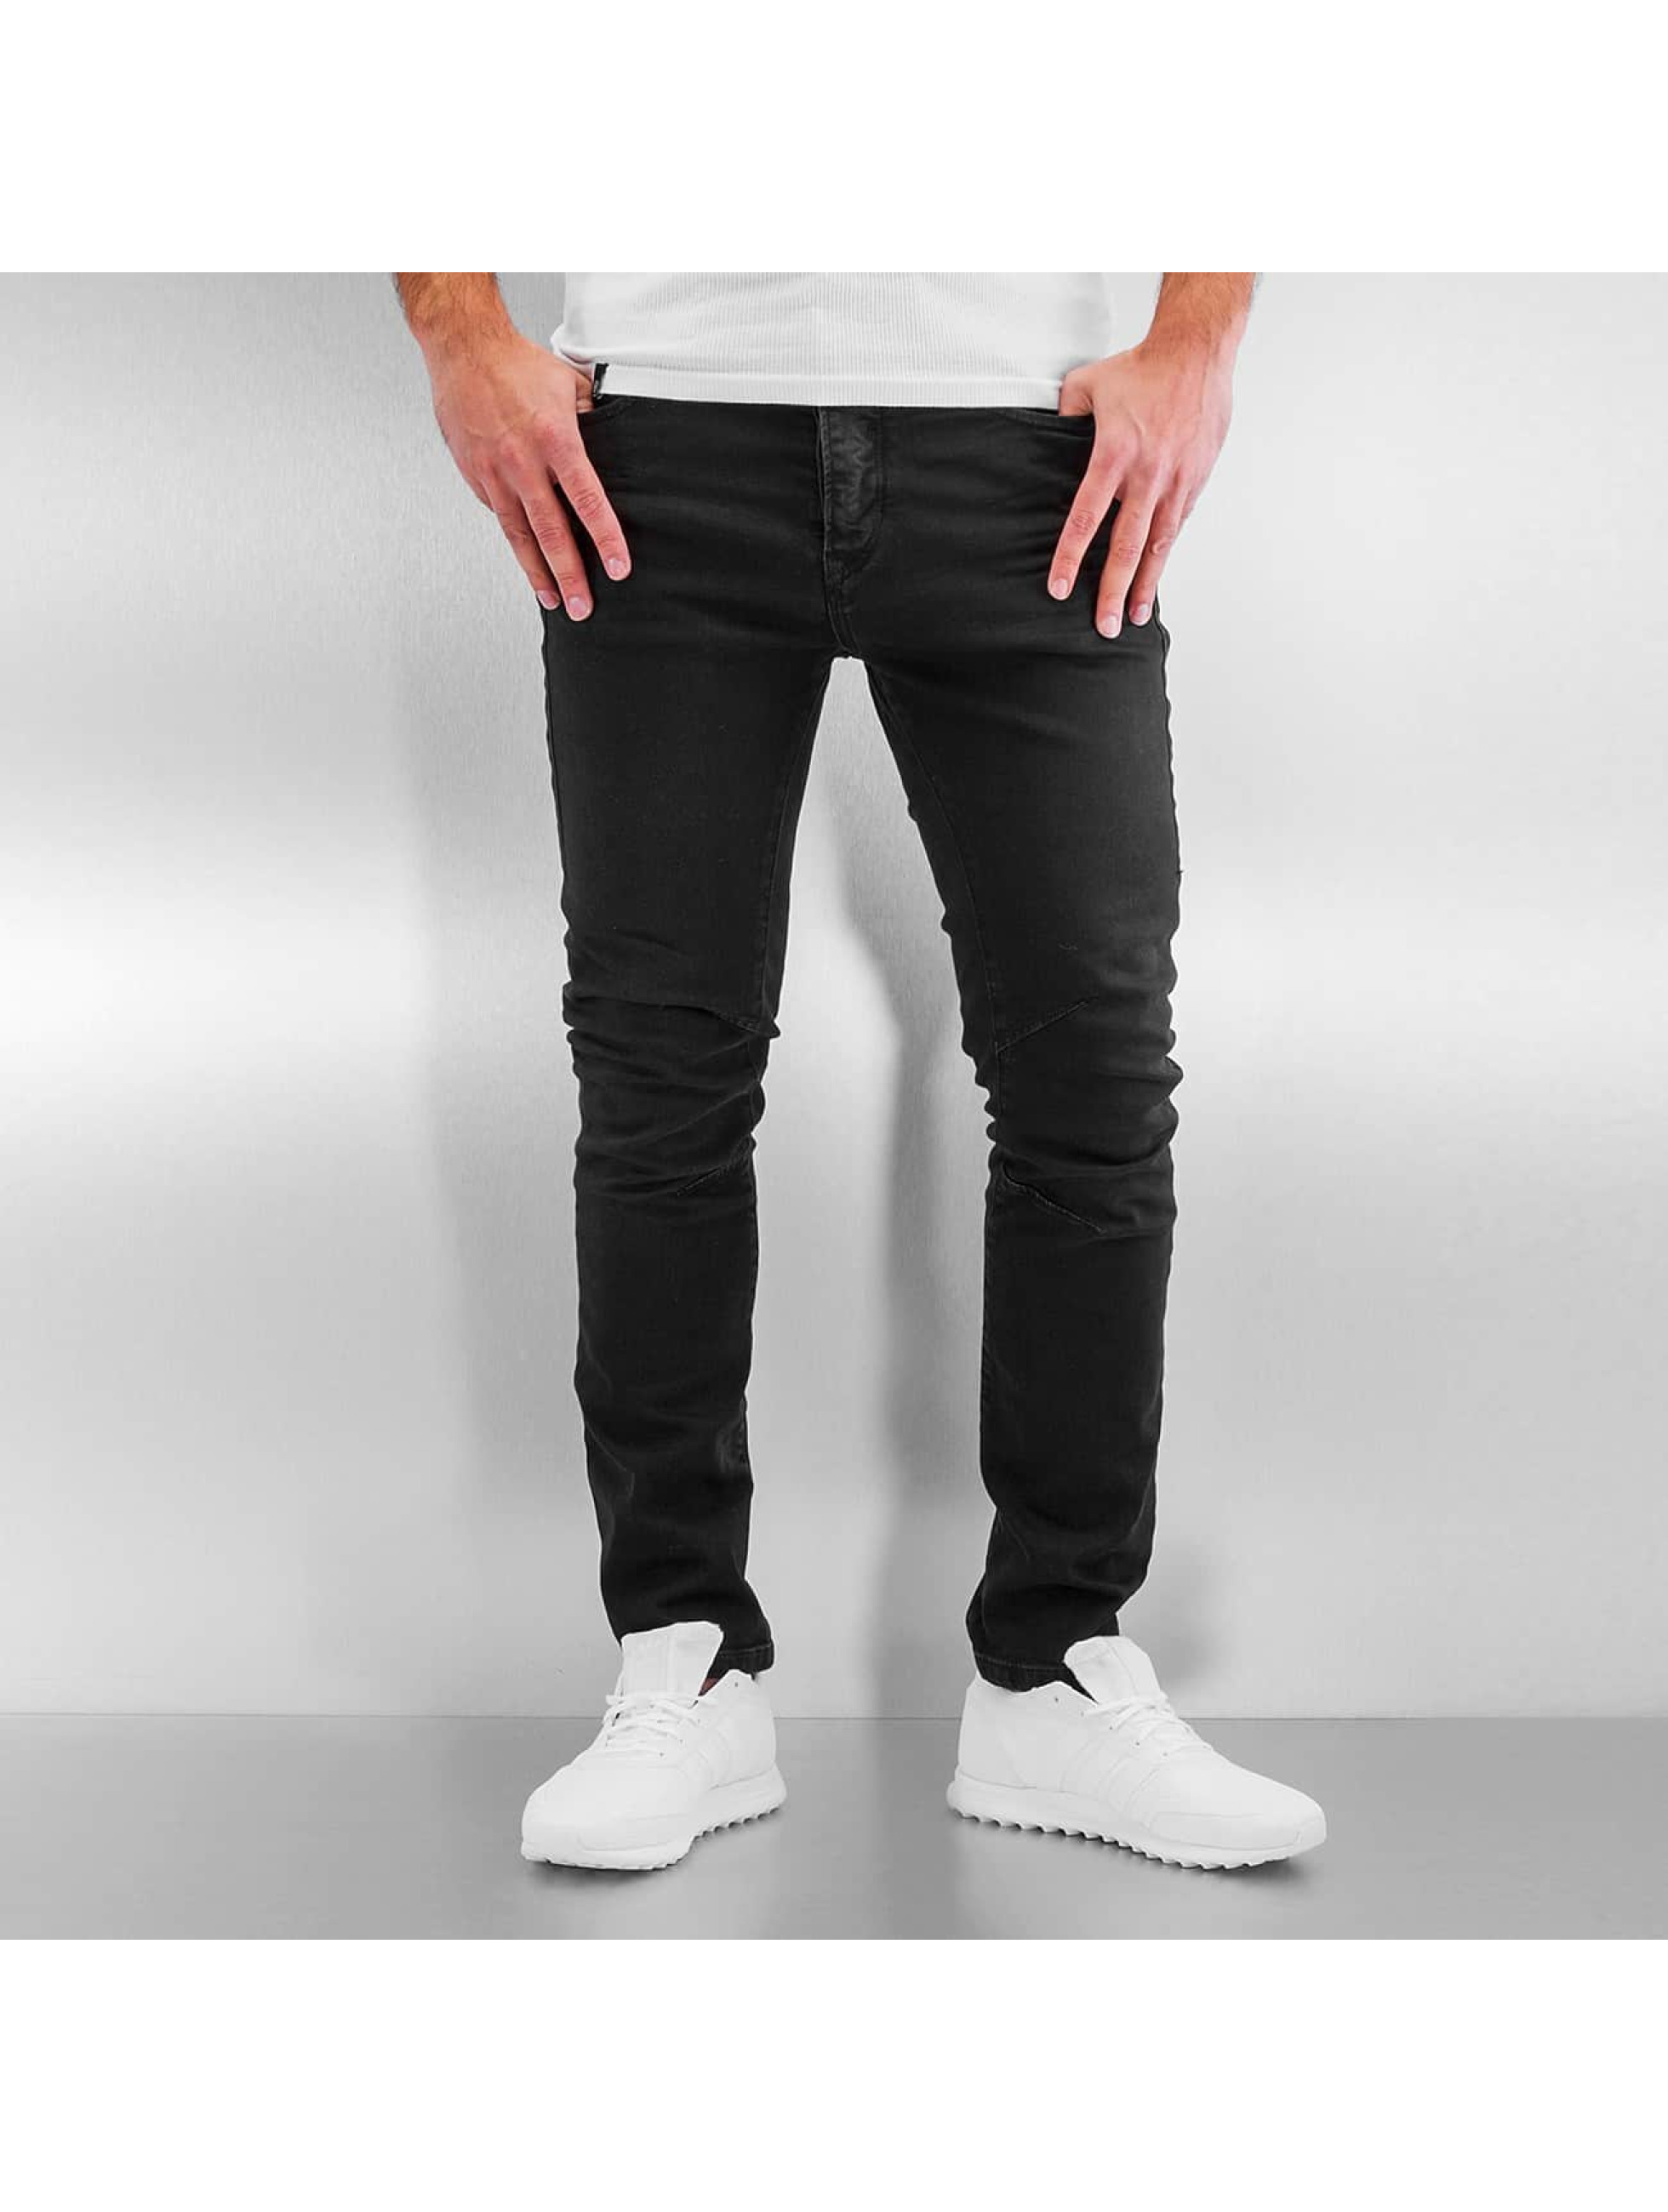 Jack & Jones Slim Fit Jeans jjIluke jjEcho JOS 999 zwart